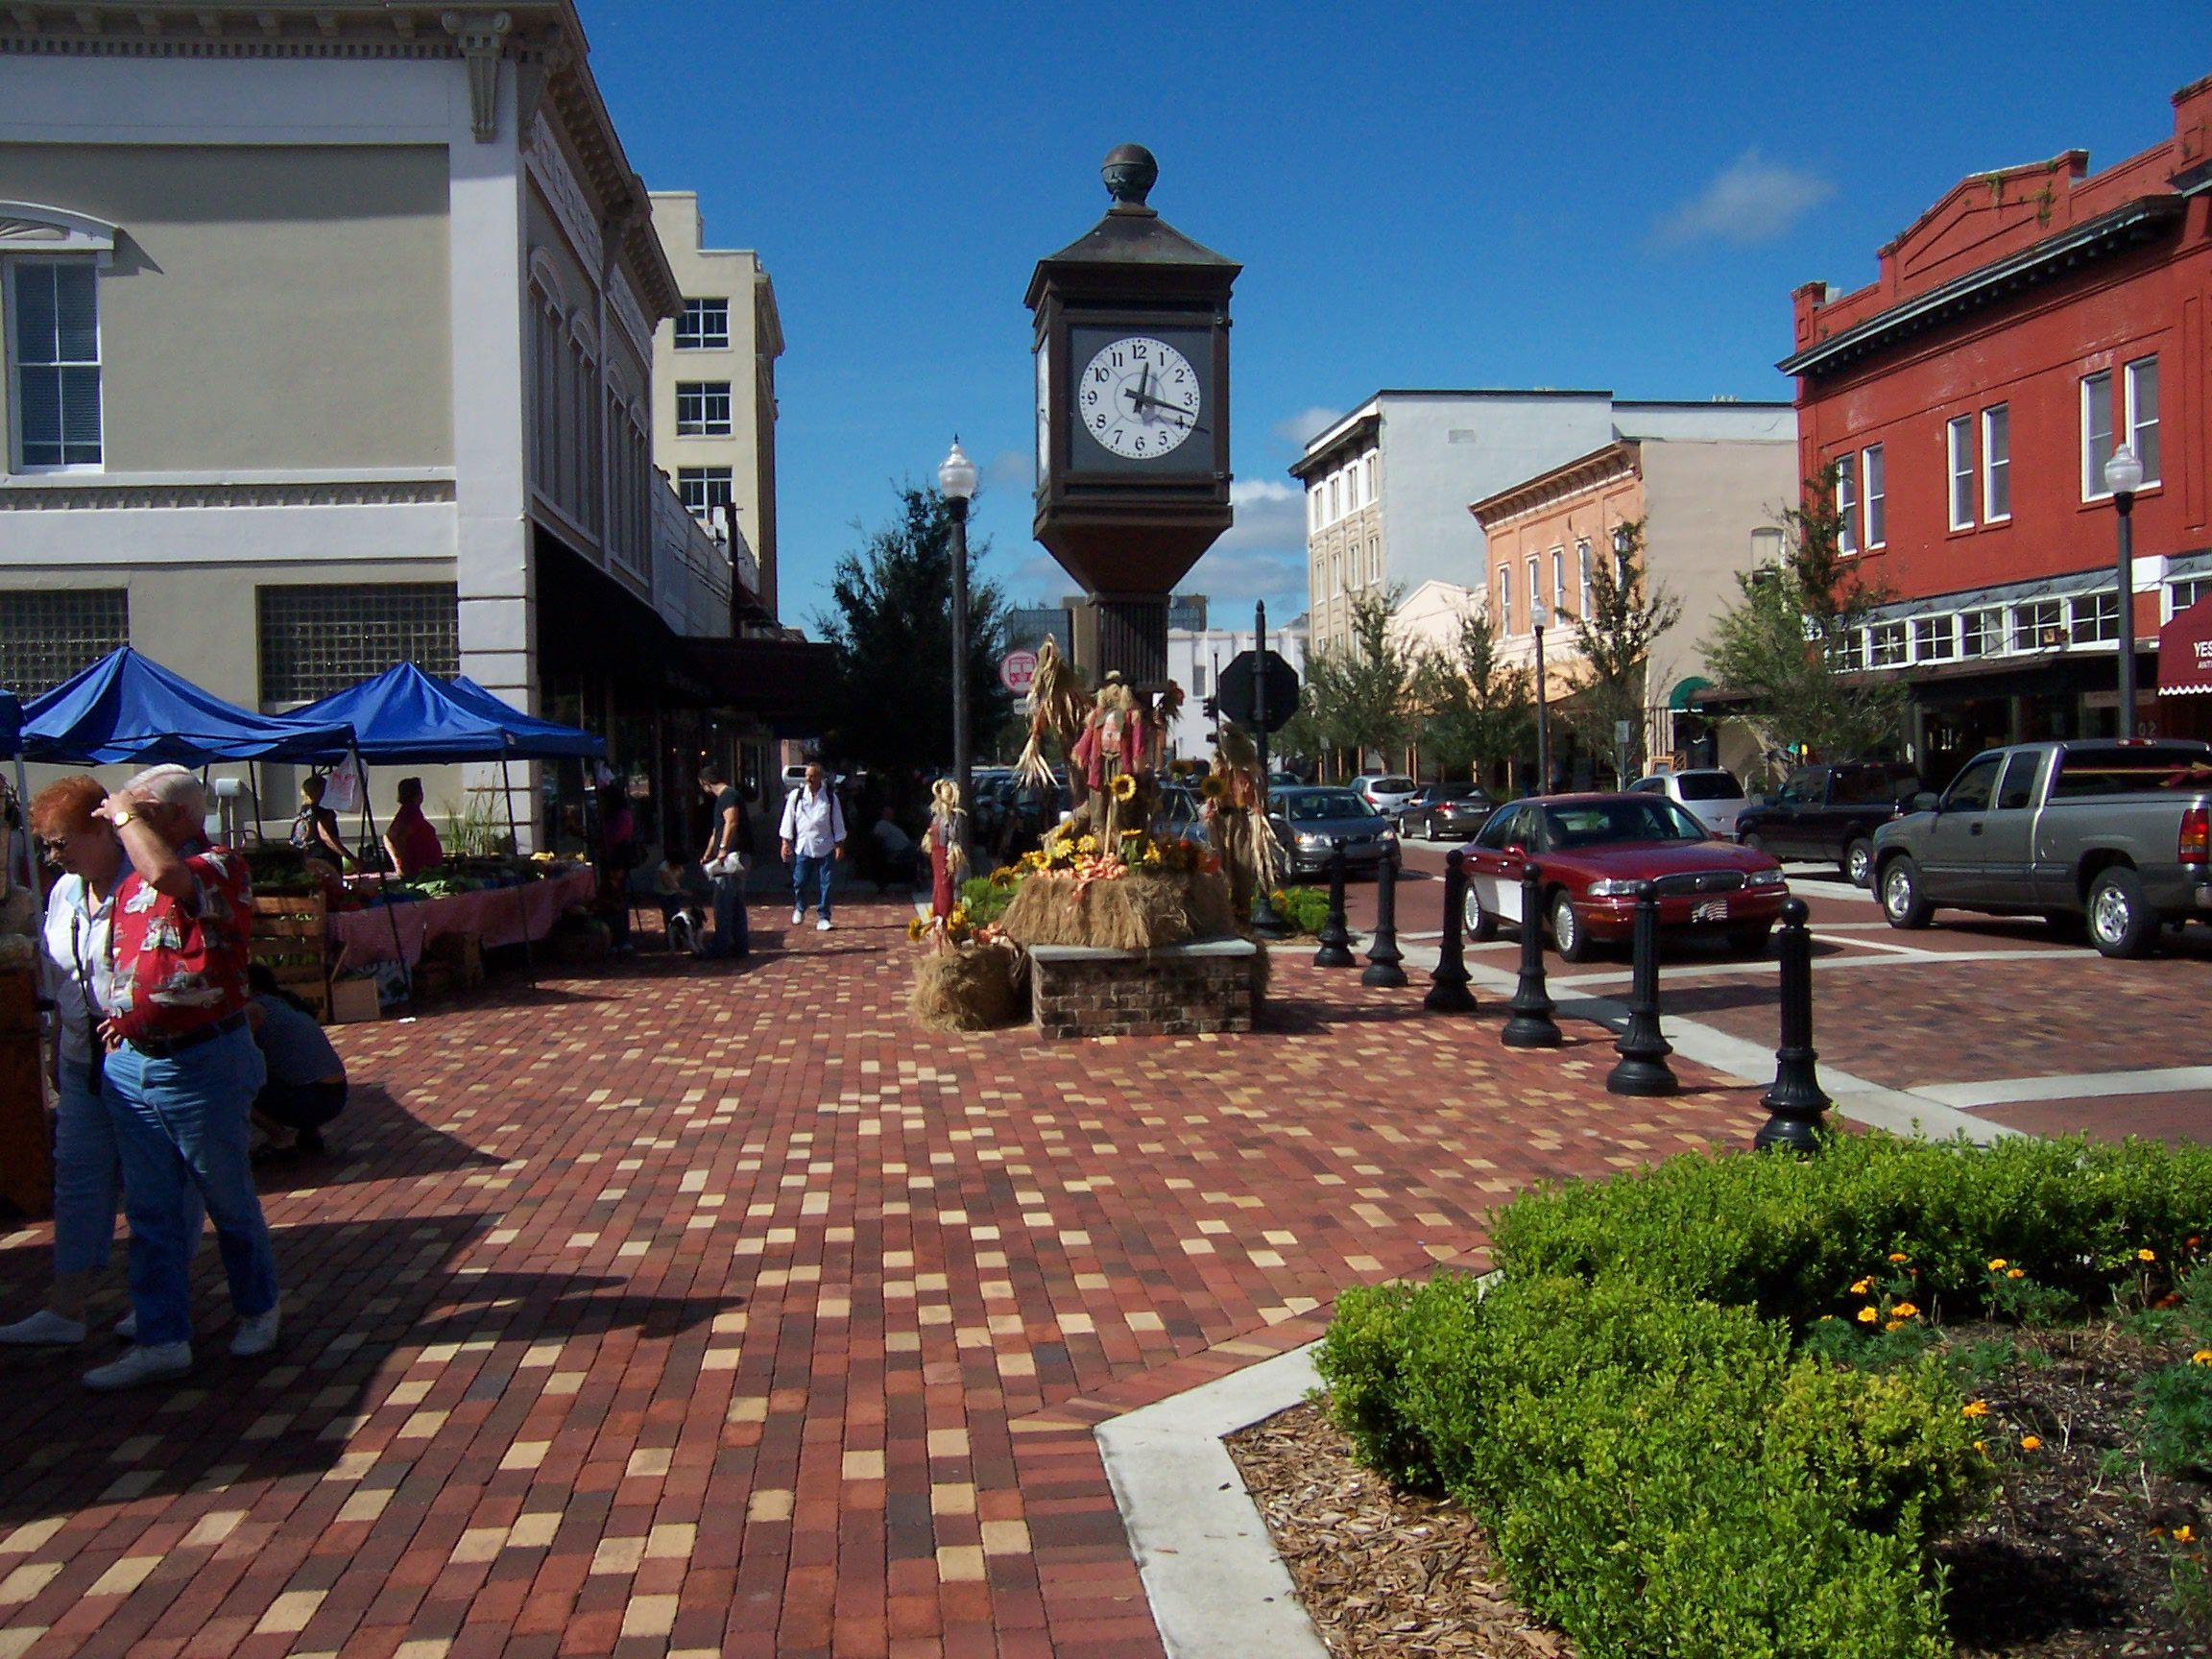 Quaint Downtown Sanford Florida Is Trying To Be Like Cocoa Beach And Similar With A Tired Old Town Shining Up The Arts Antiques Ping